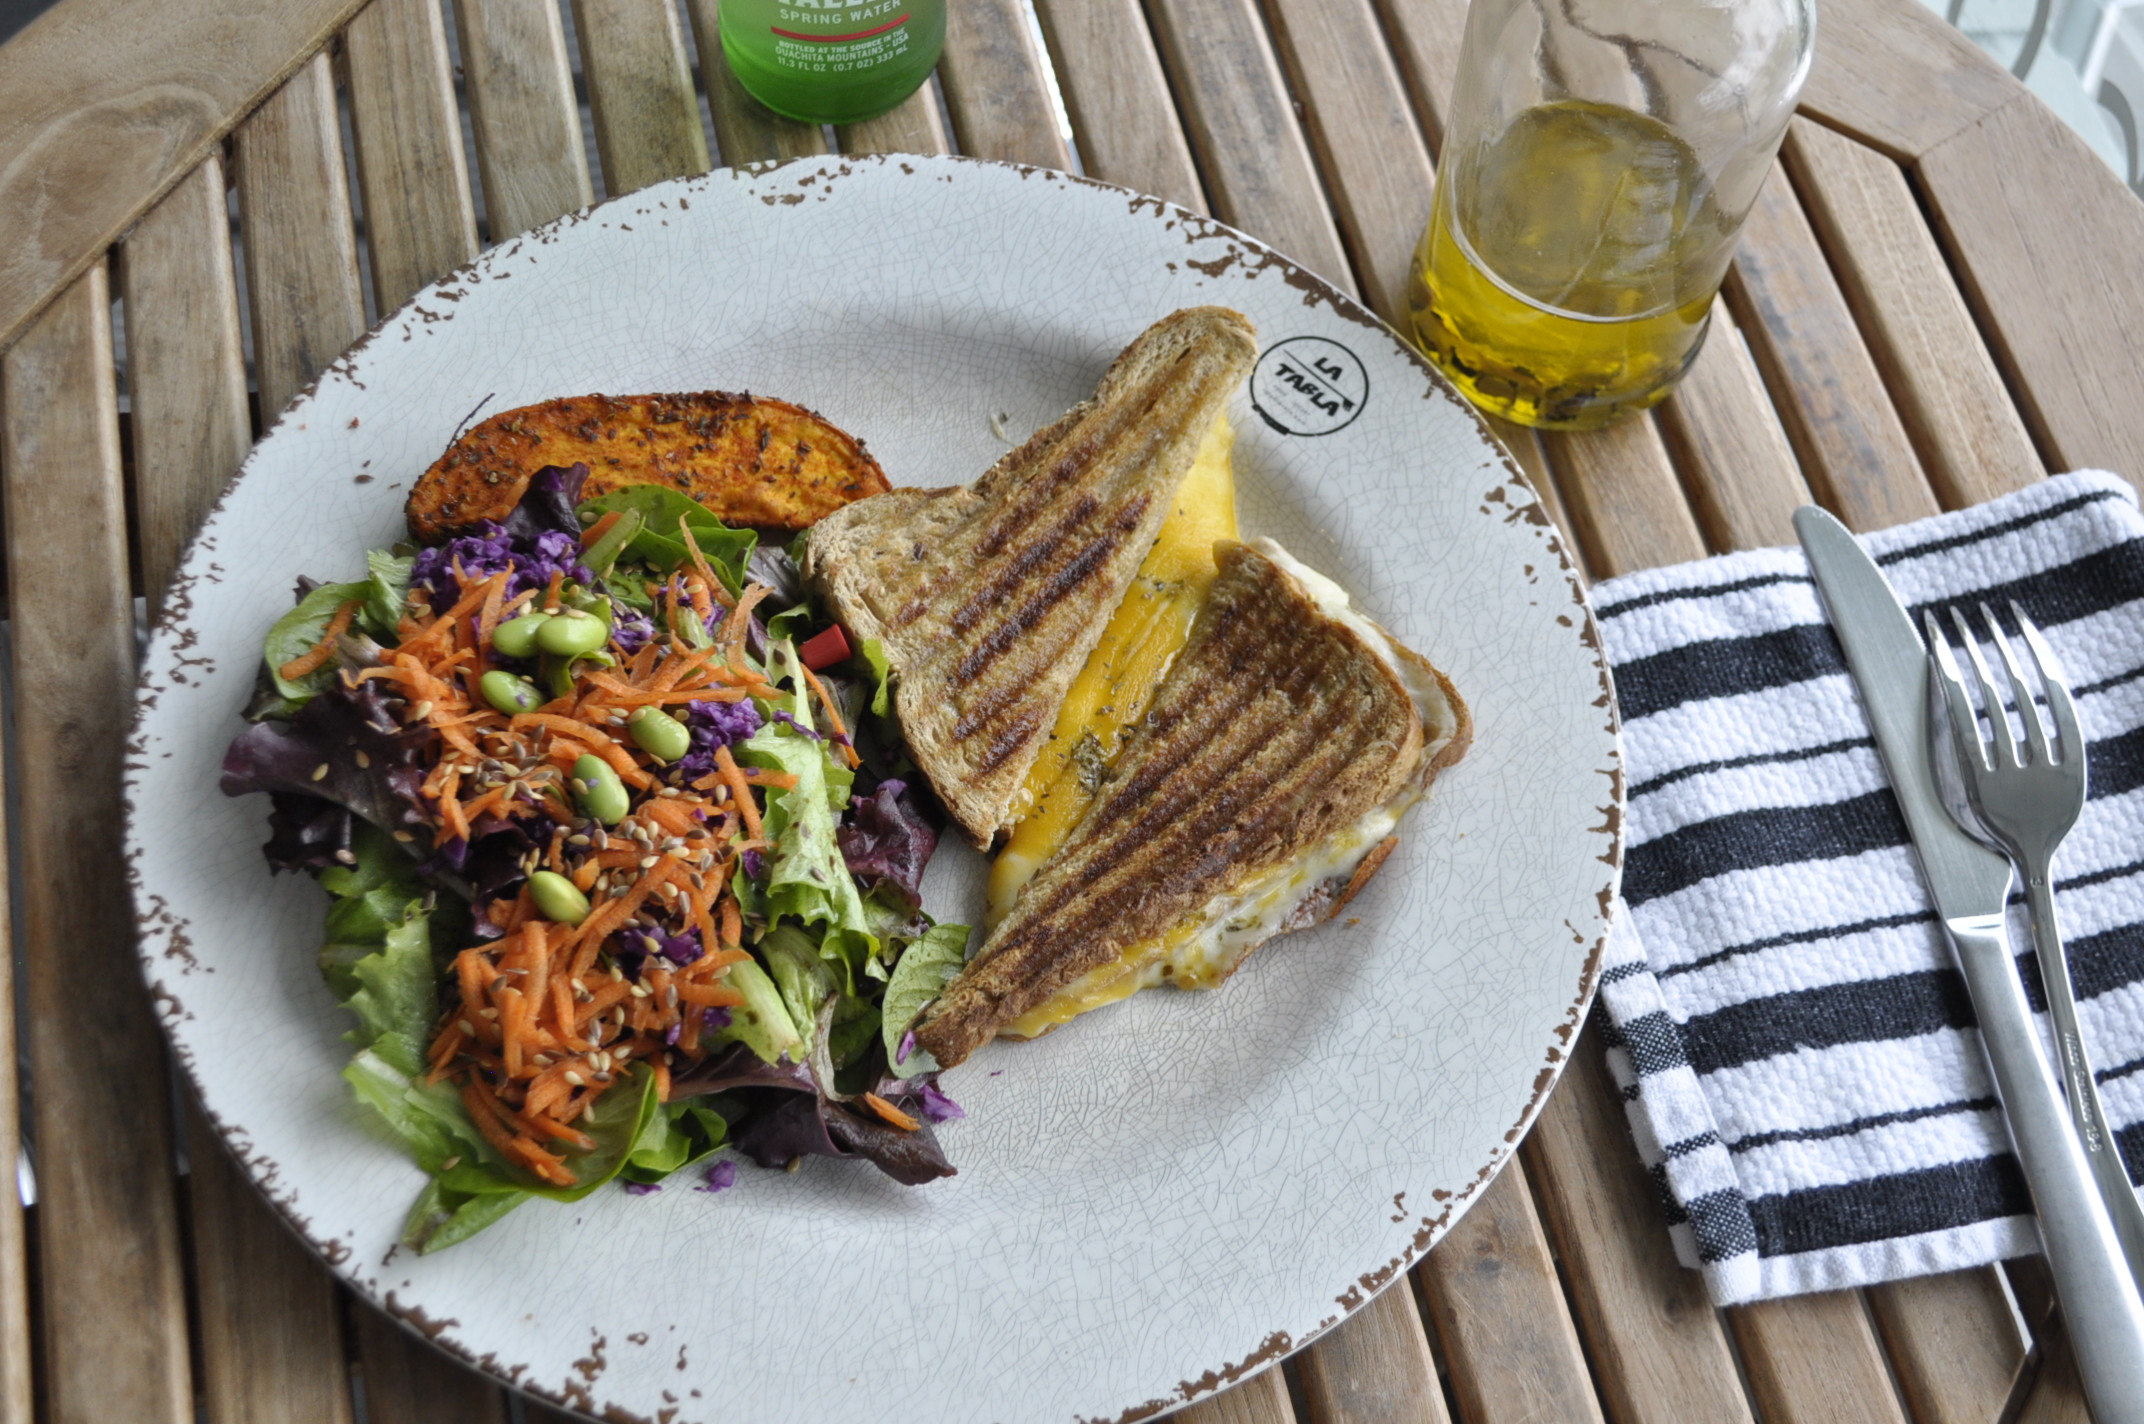 Four cheese Panini with organic black truffle olive oil Image